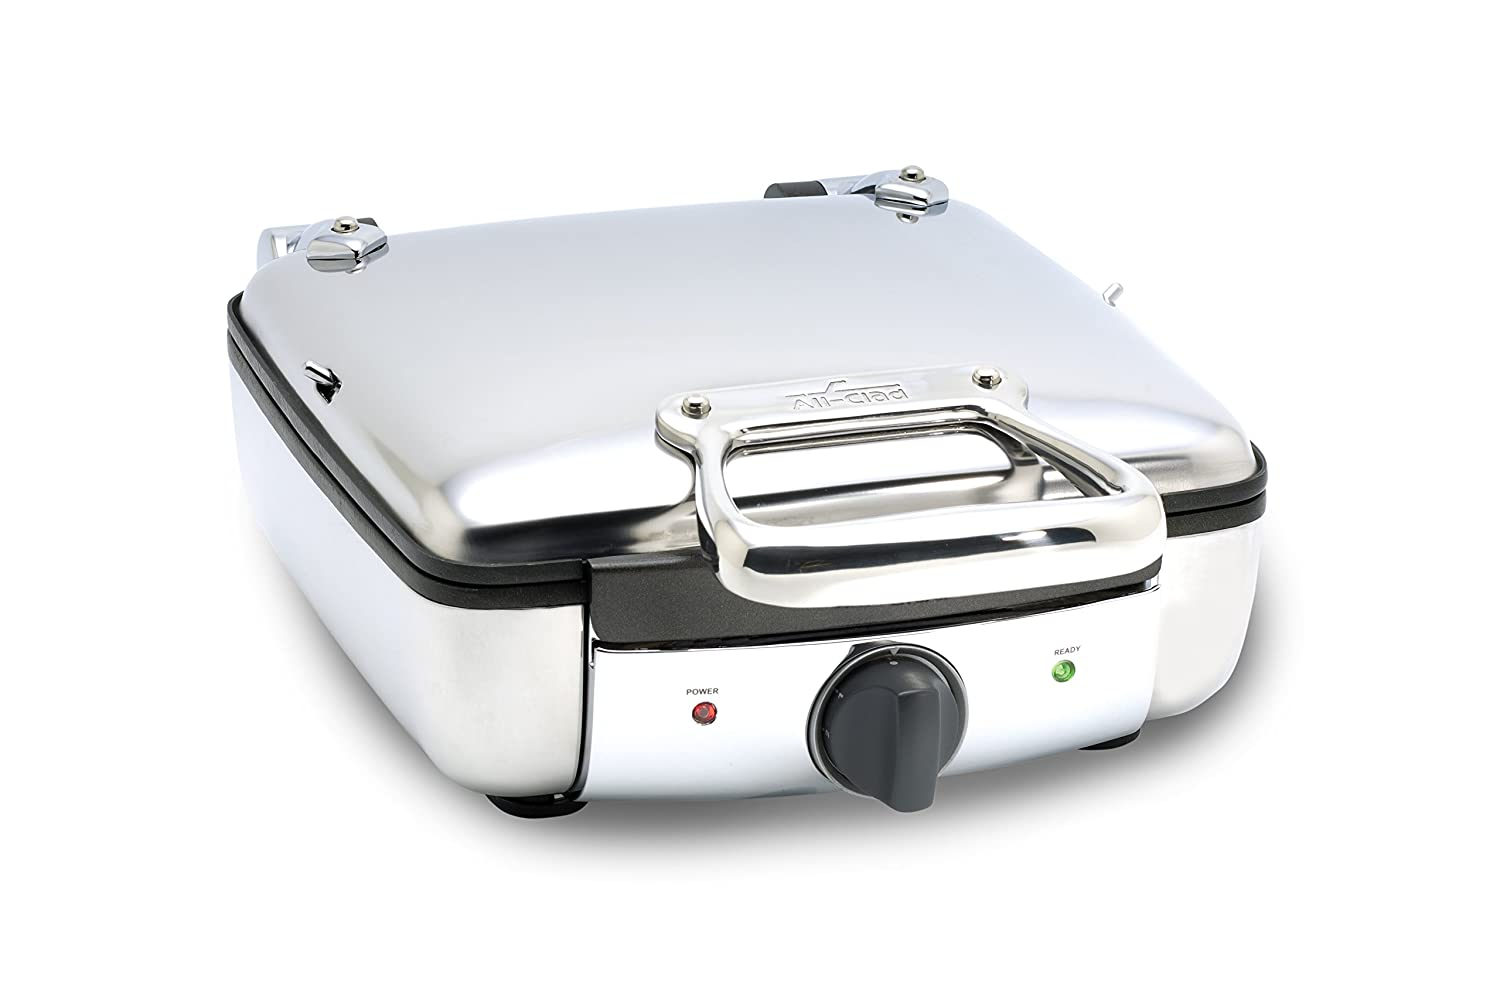 All Clad 99010 Gt Stainless Steel Belgian Waffle Maker With 7 Browning Settings, 4 Square, Silver by All Clad